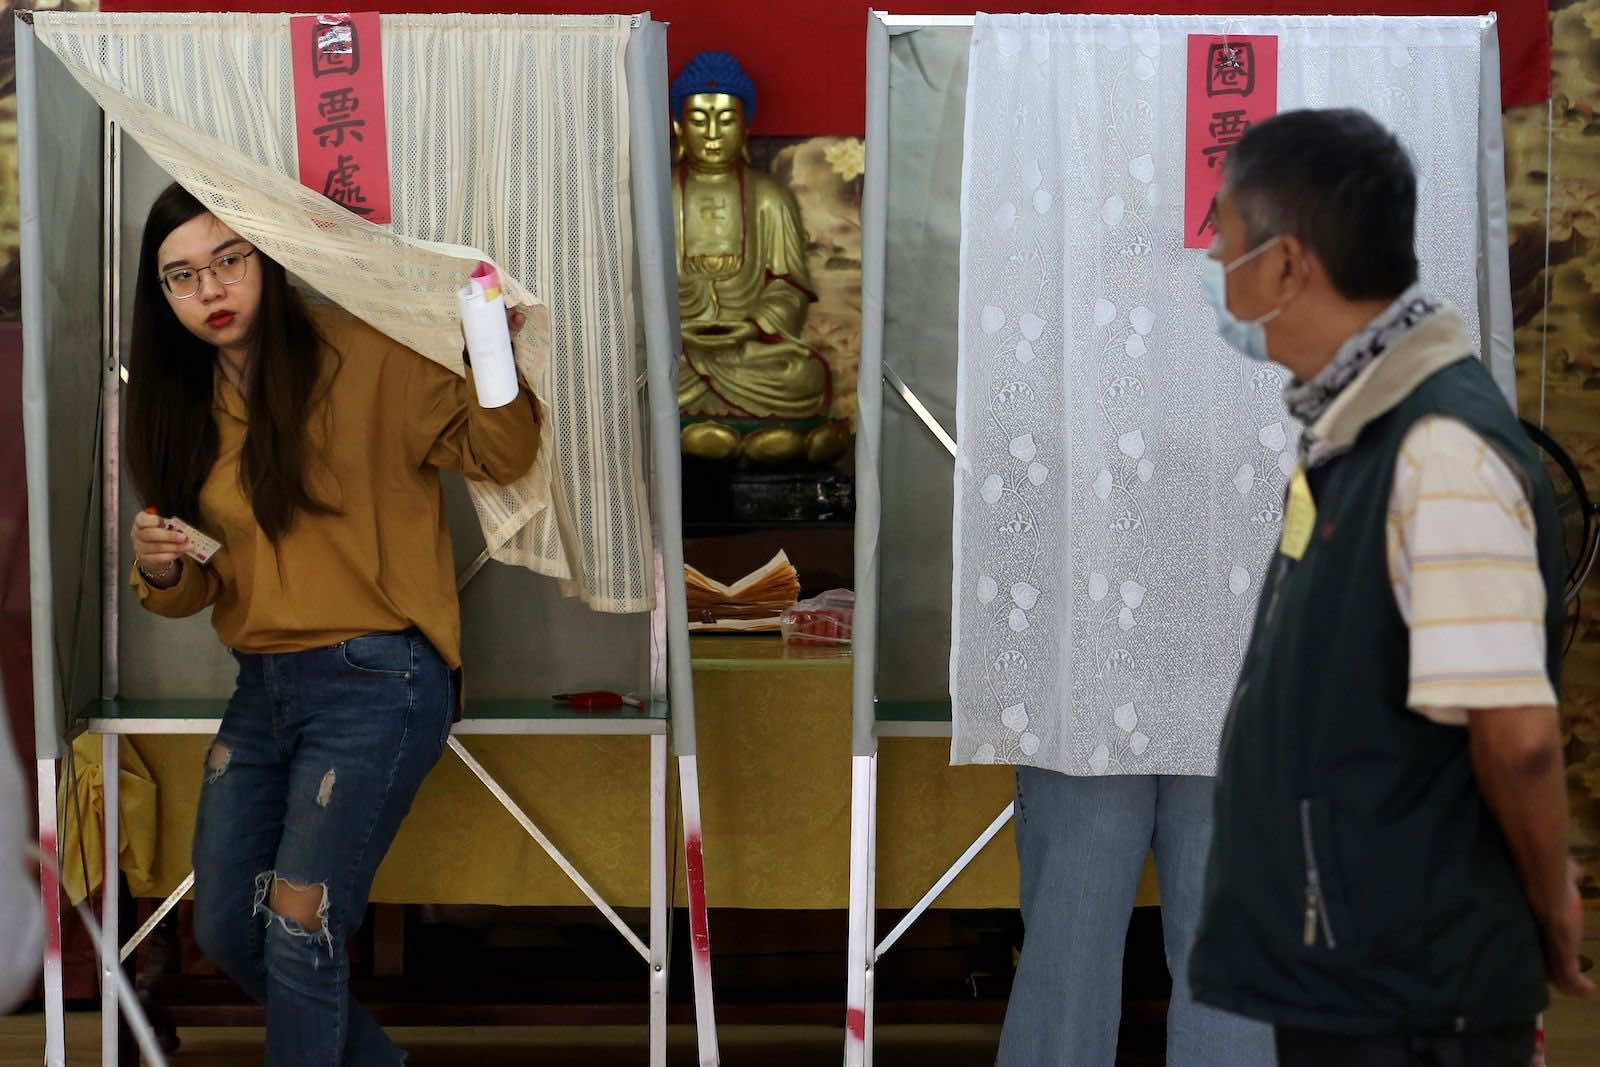 A polling station at Linyuan District in Kaohsiung during the January 2020 elections in Taiwan (Hsu Tsun-hsu/AFP via Getty Images)